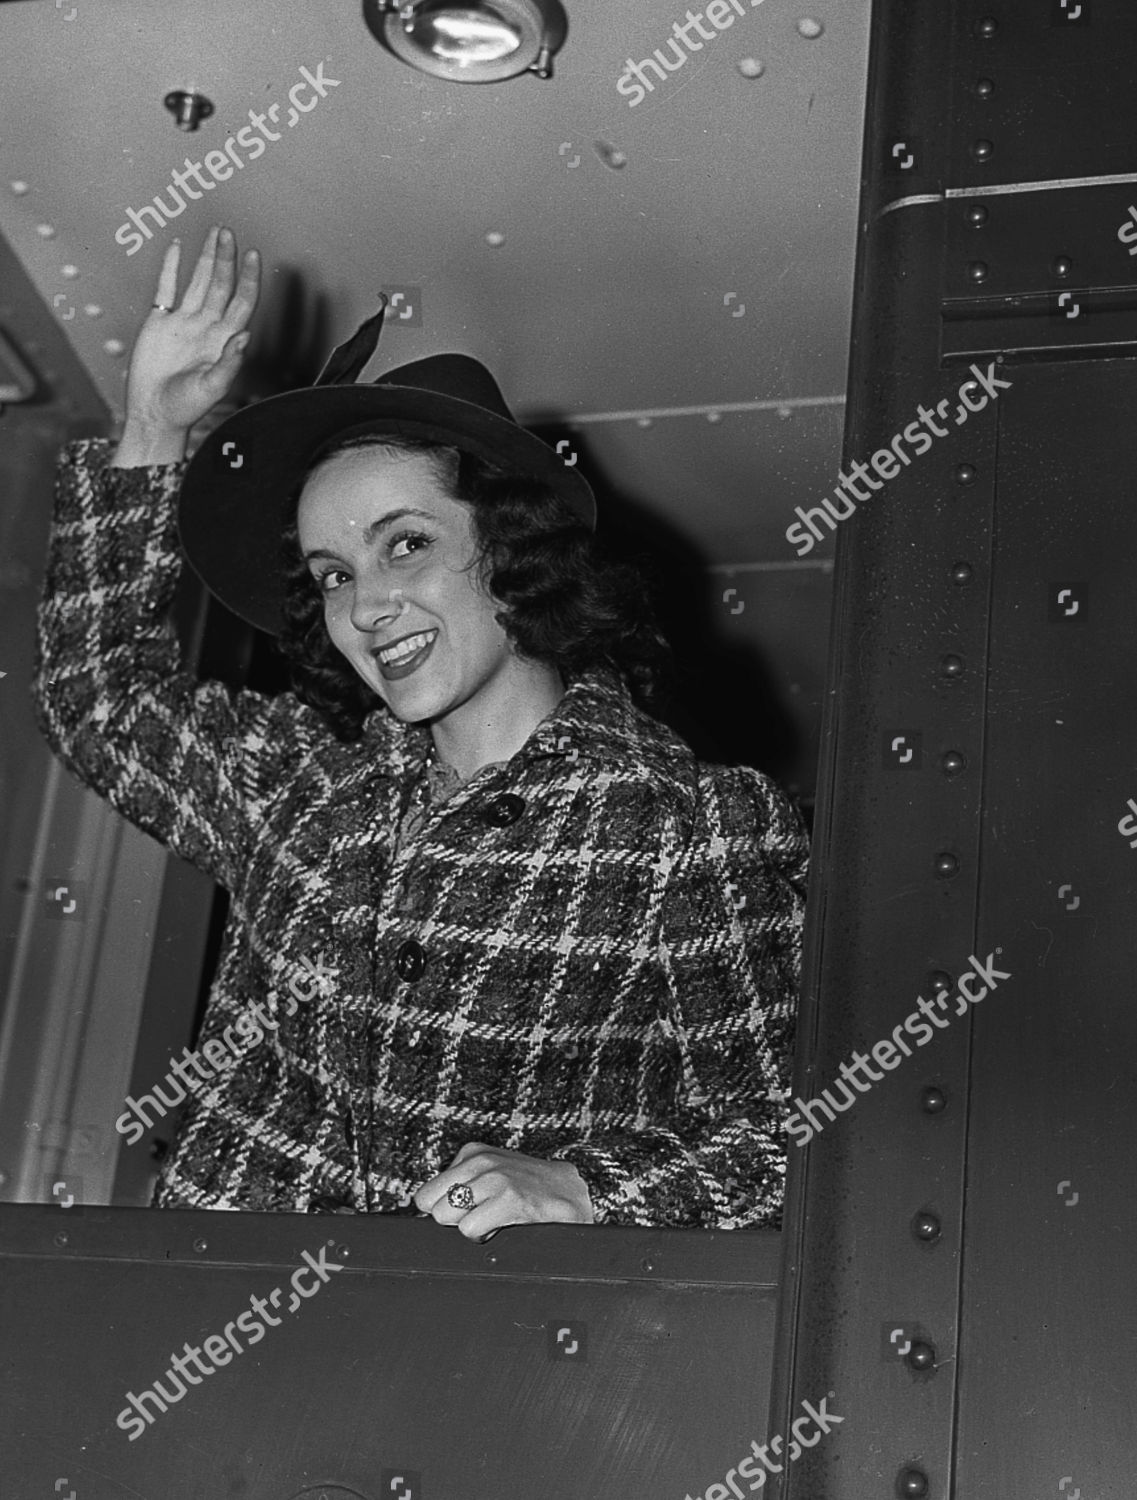 ADRIANA CASELOTTI NEW YORK USA Stock Image By AP For Editorial Use Dec 14 1939